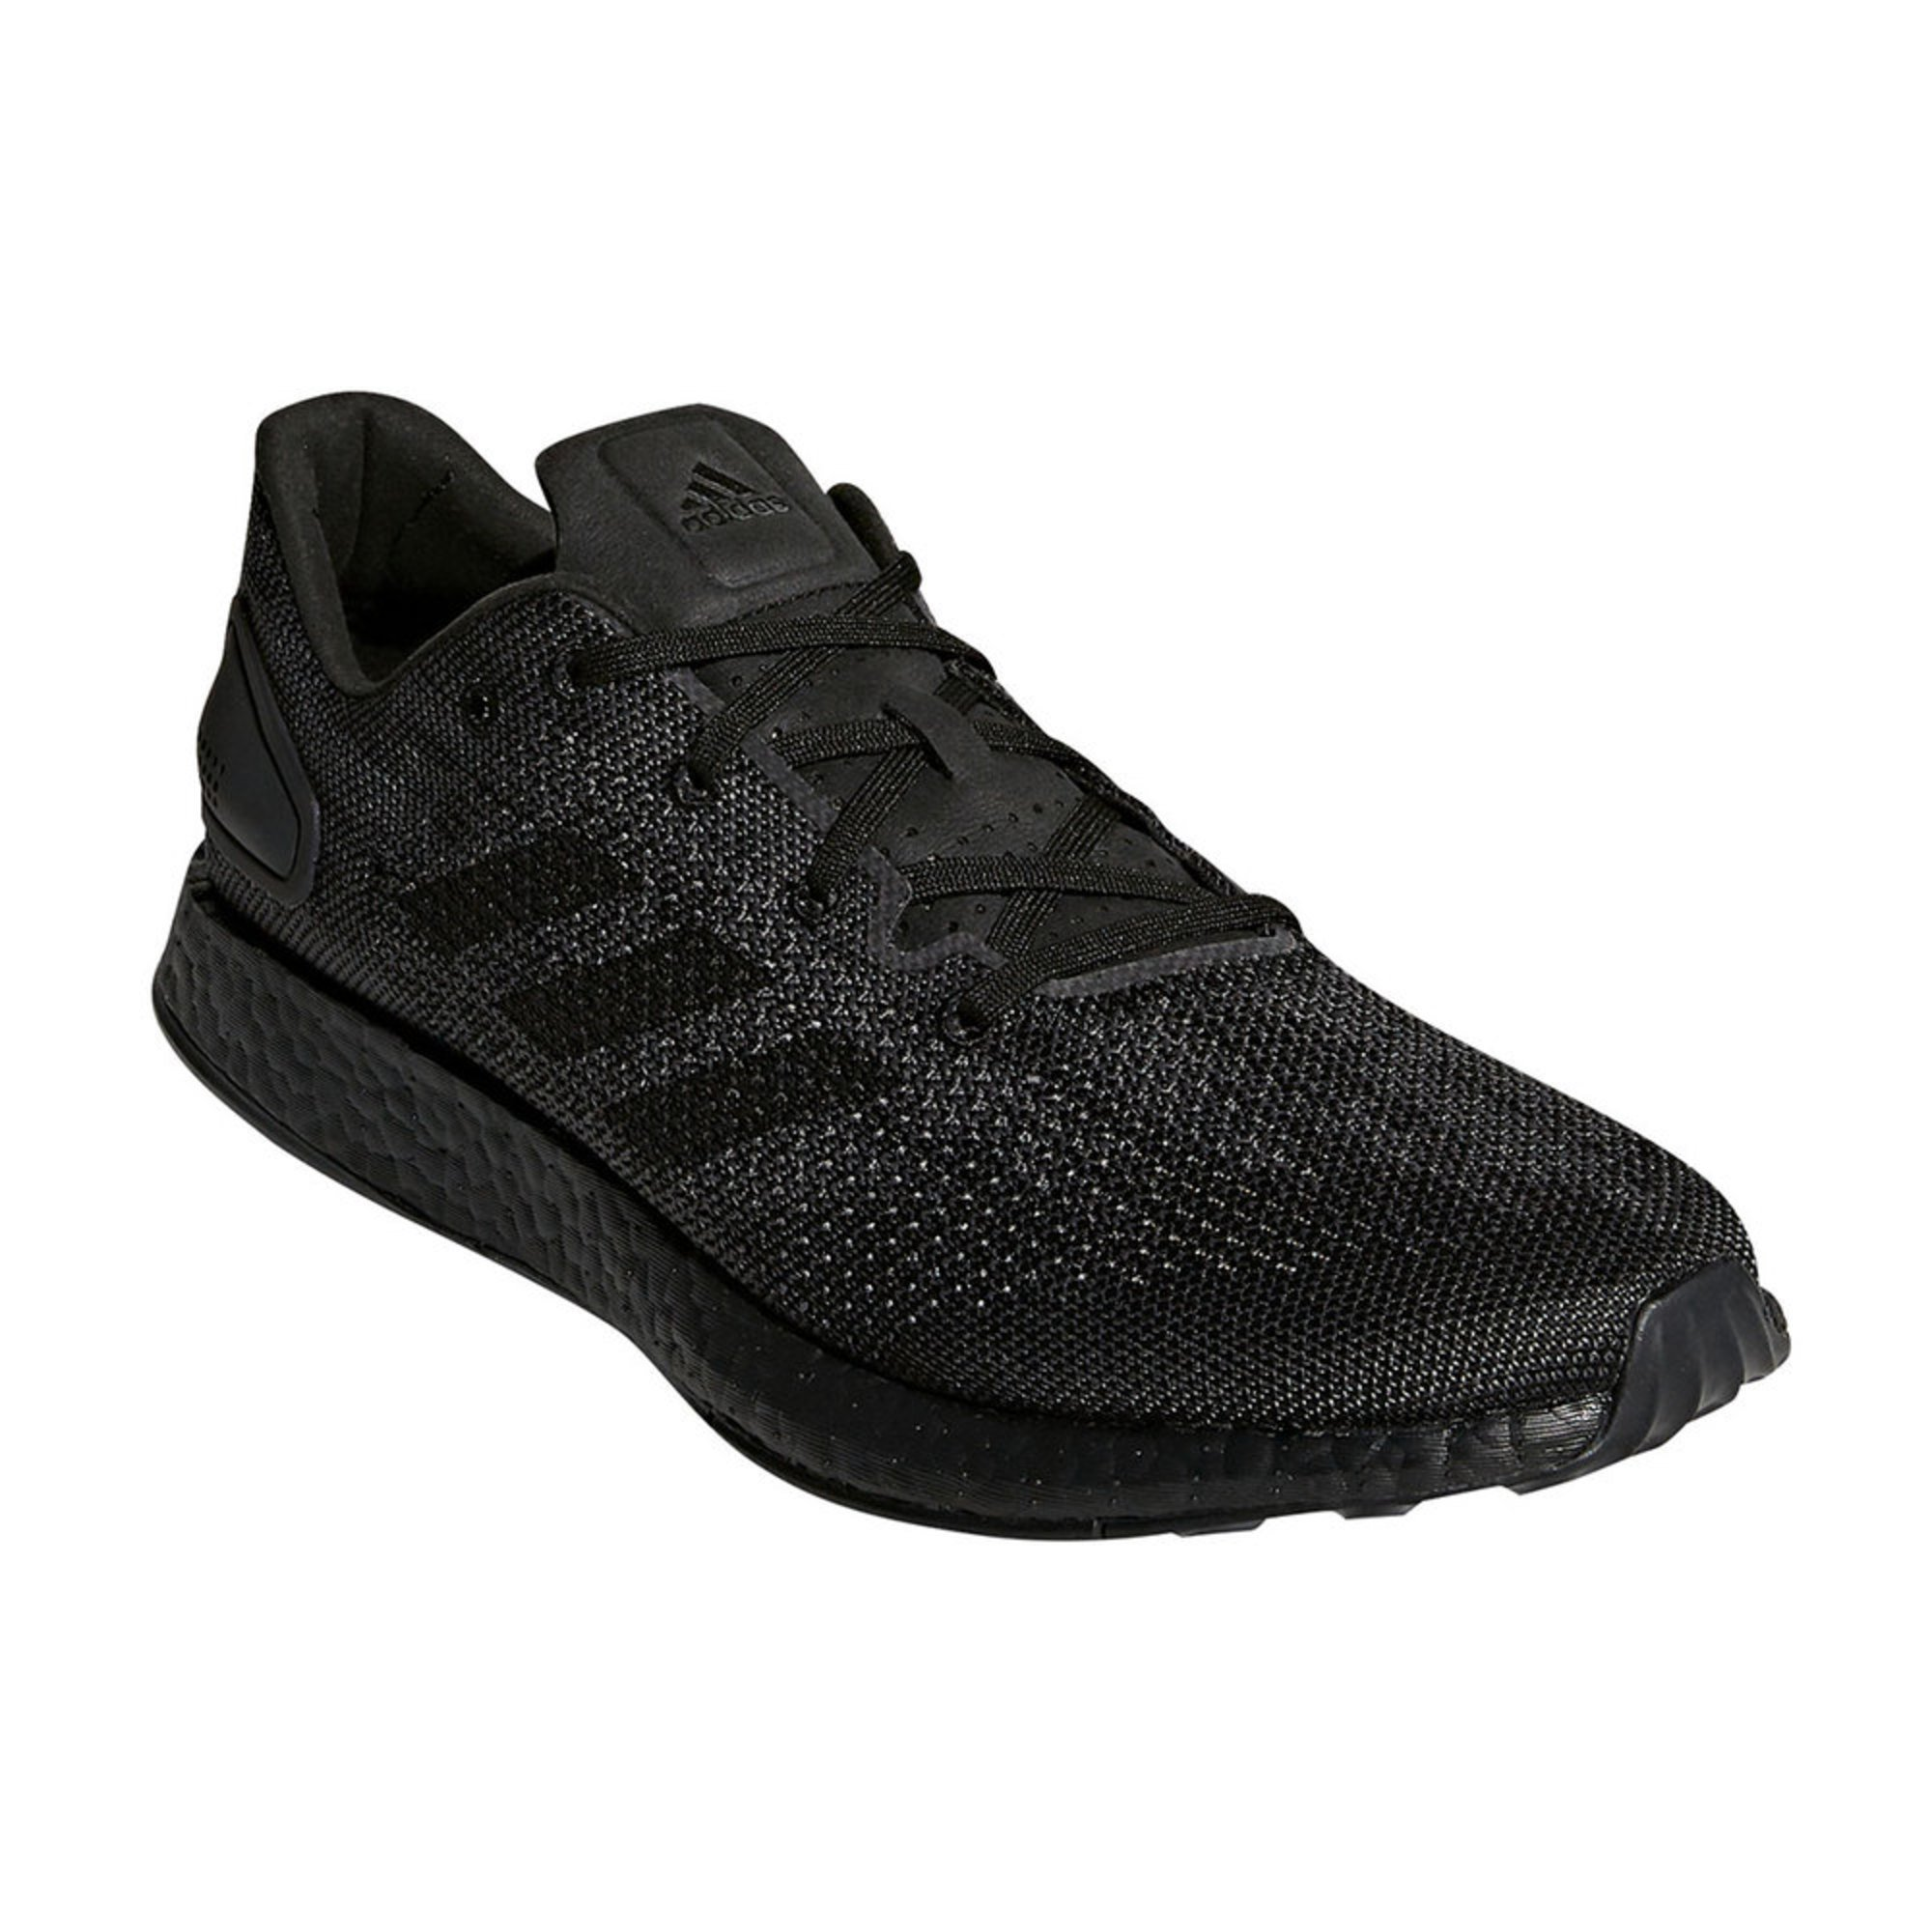 adidas pureboost running shoes mens